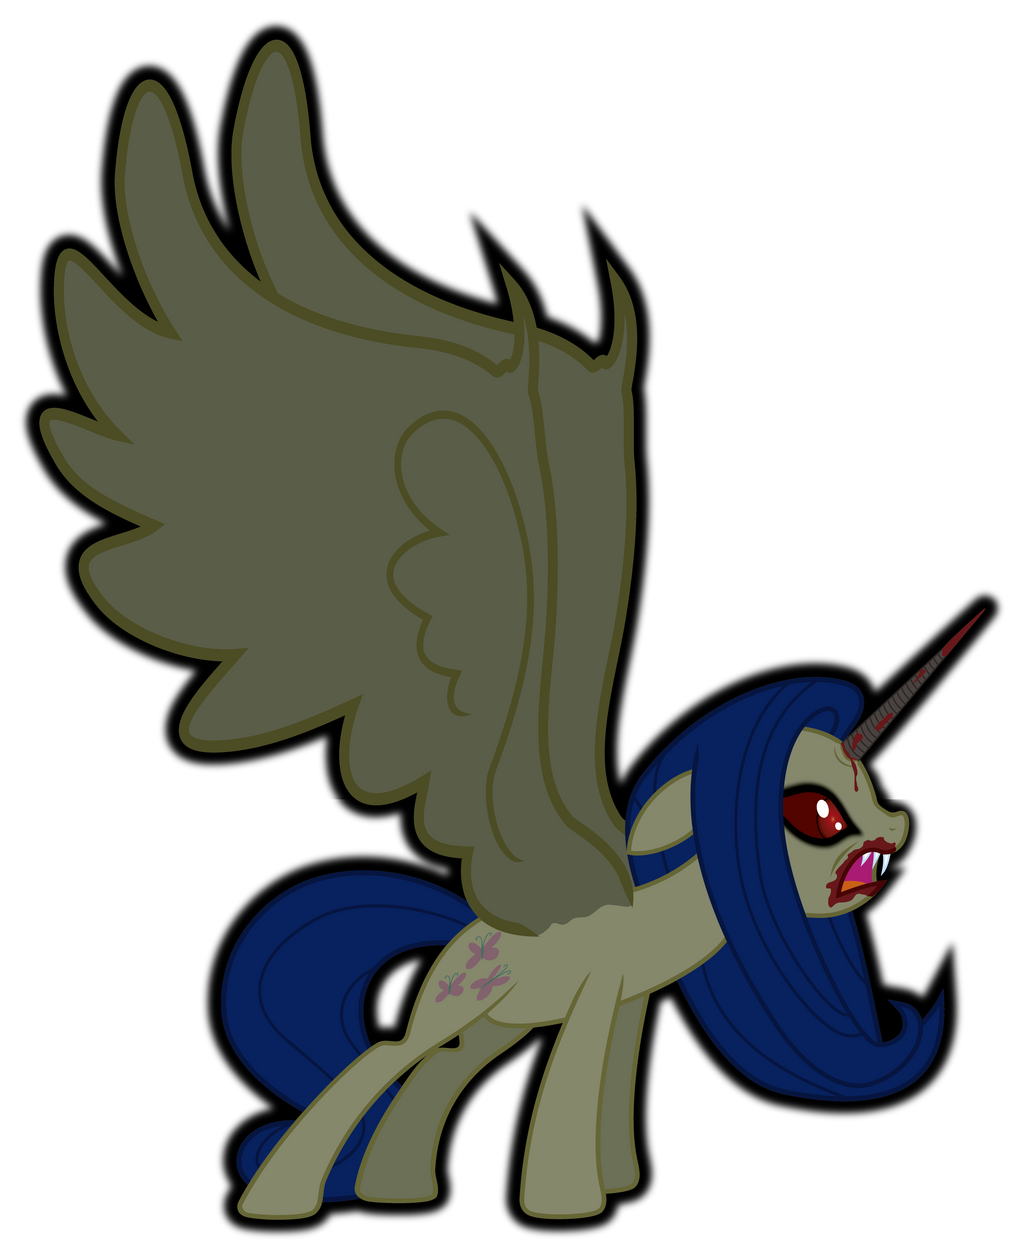 Demonic Alicorn By J5A4 On DeviantArt